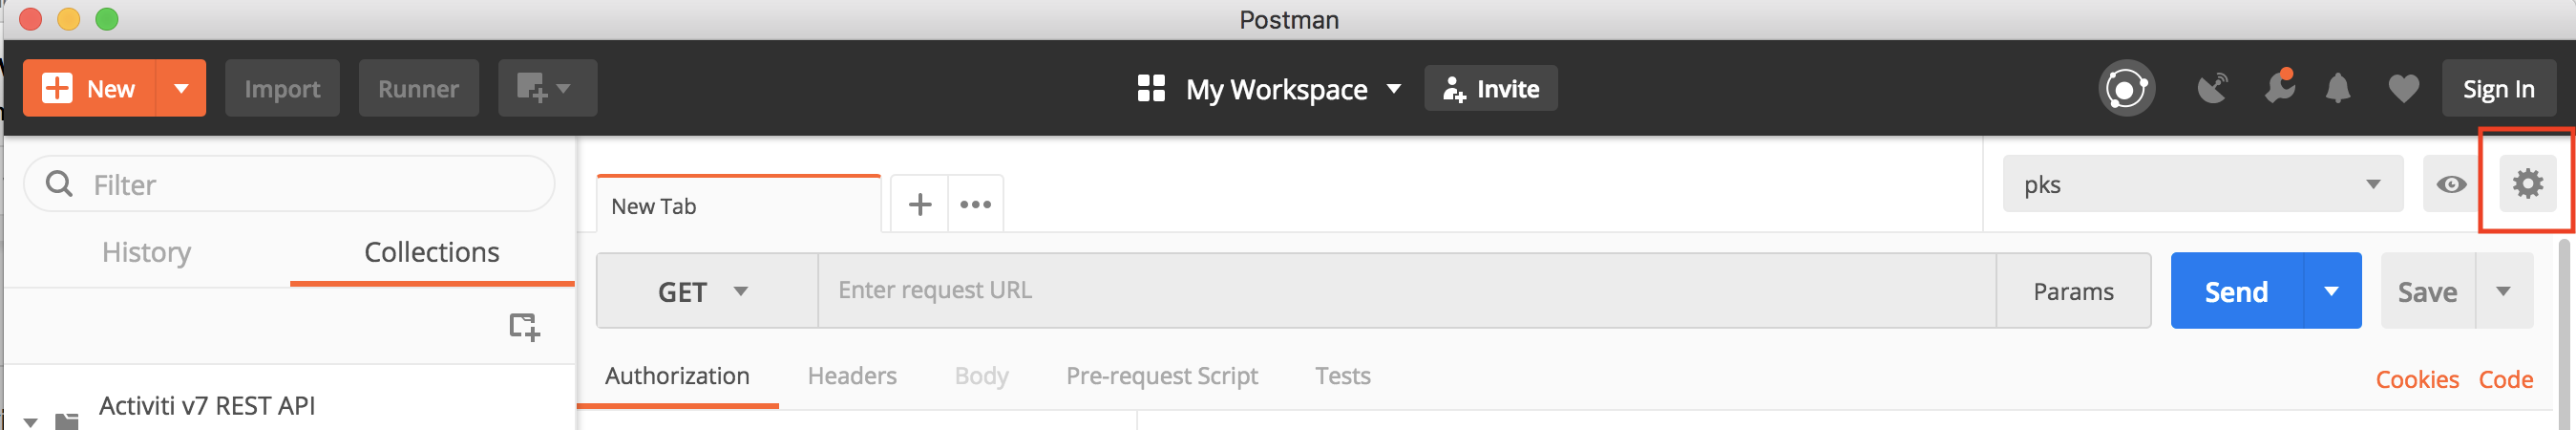 postman-manage-environment.png